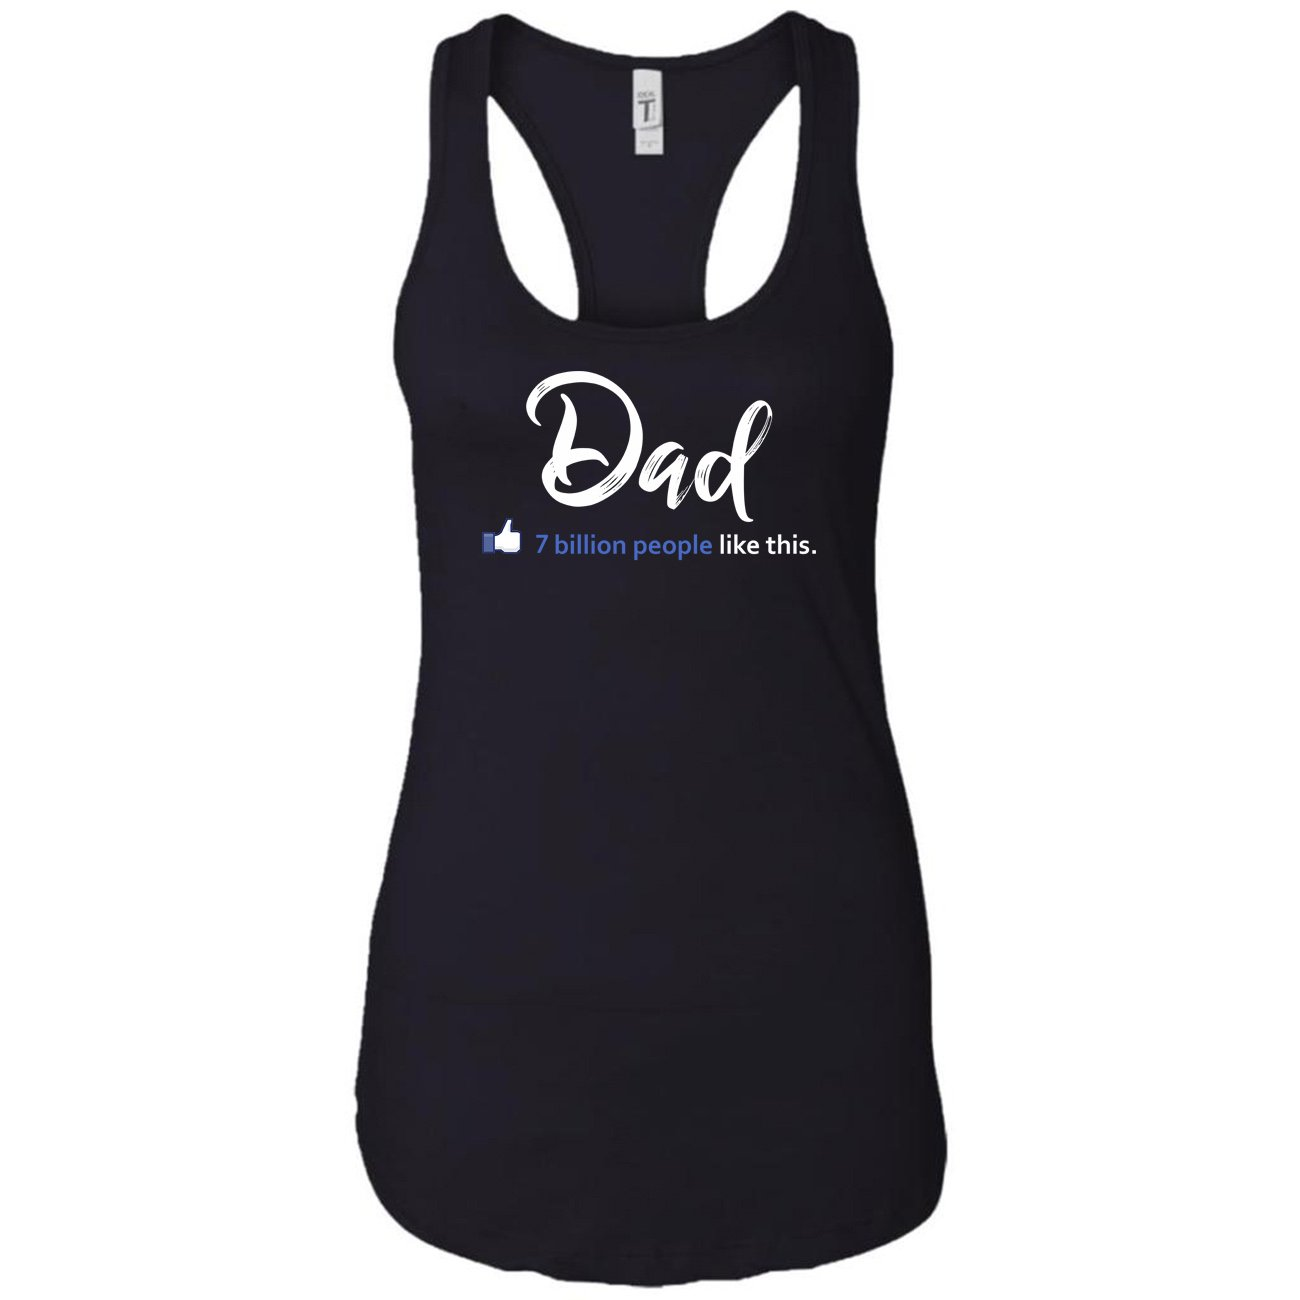 8562960c803ac Amazon.com  Pure s Designs Dad-Mens Father Day Birthday Gifts-Basic Plain  Gi Racerback Tank Tops for Women  Clothing